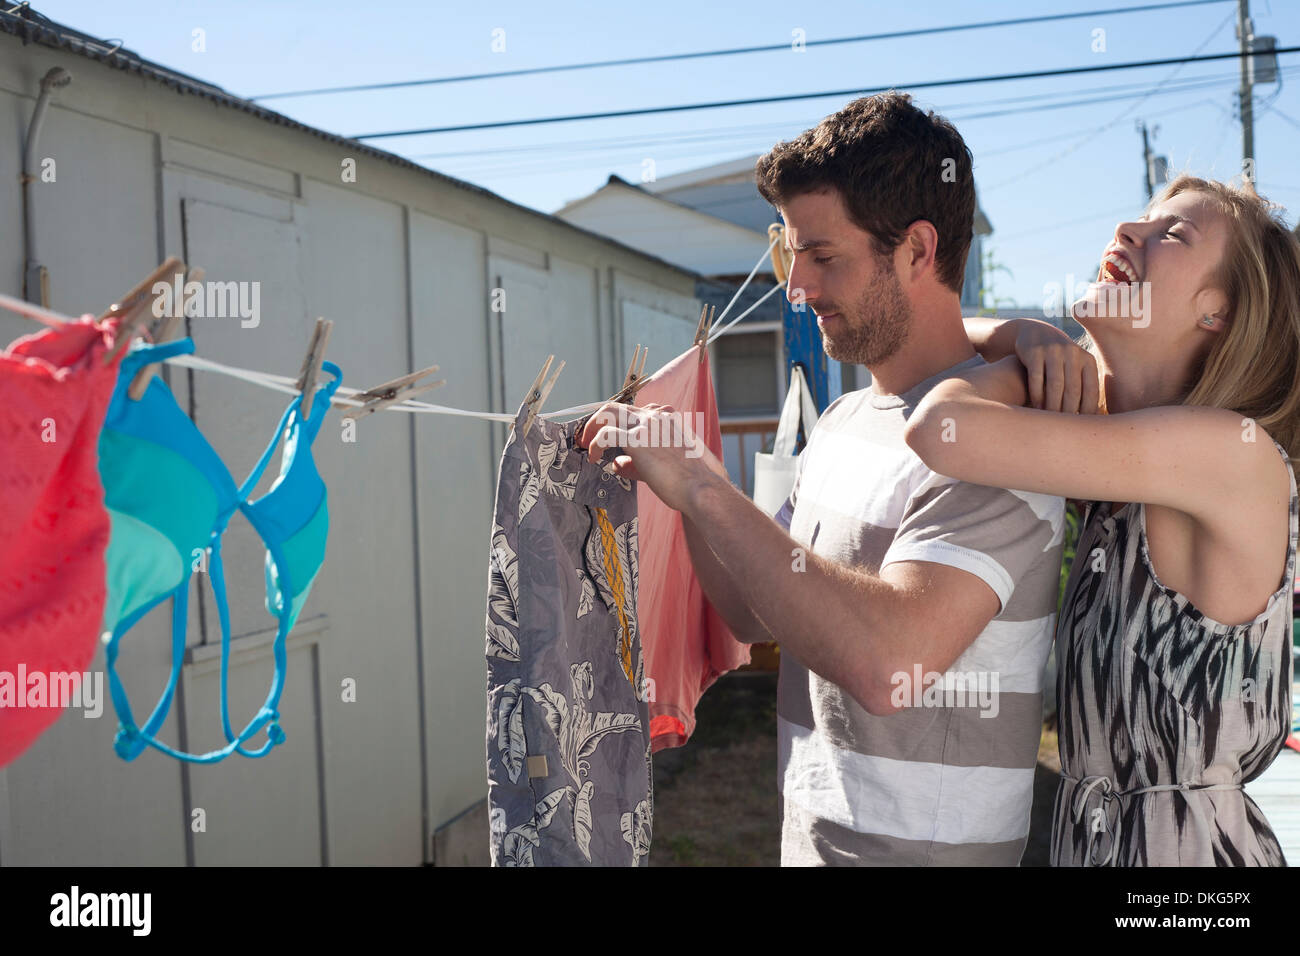 Couple hanging out swimwear, Breezy Point, Queens, New York, USA - Stock Image